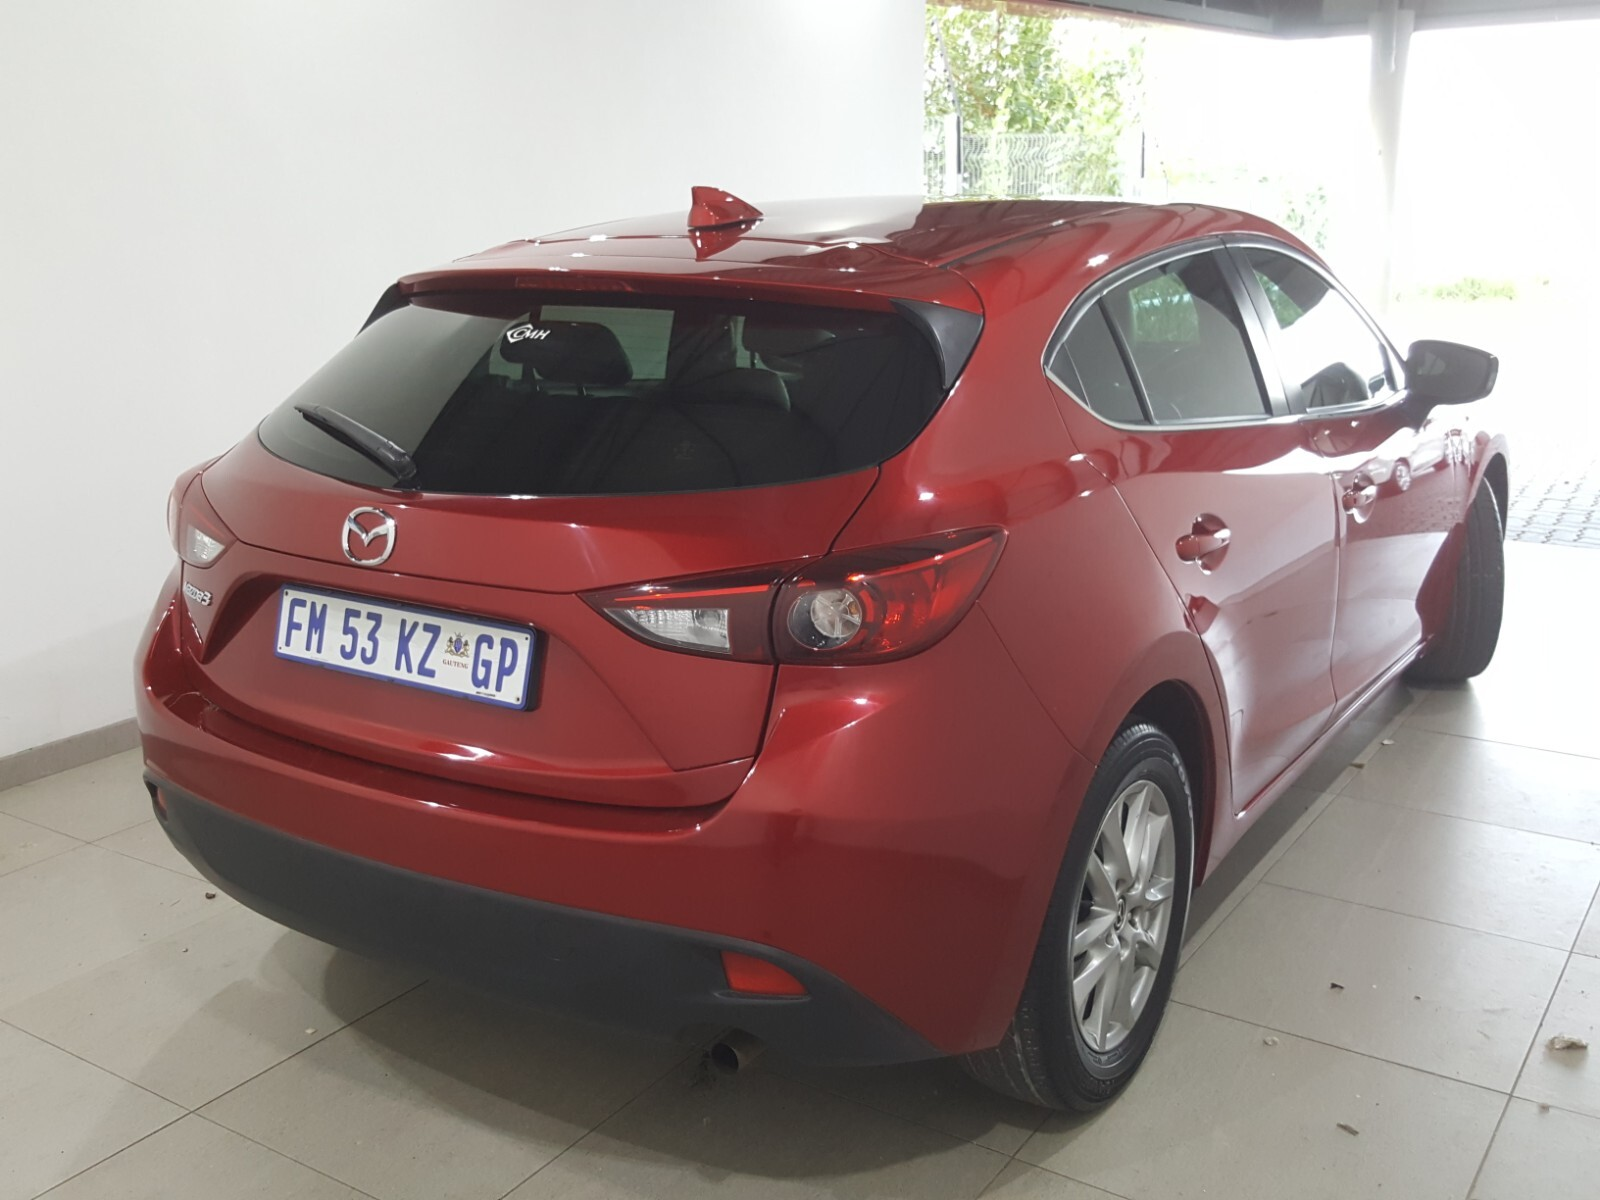 MAZDA 1.6 DYNAMIC 5DR A/T Roodepoort 7327025